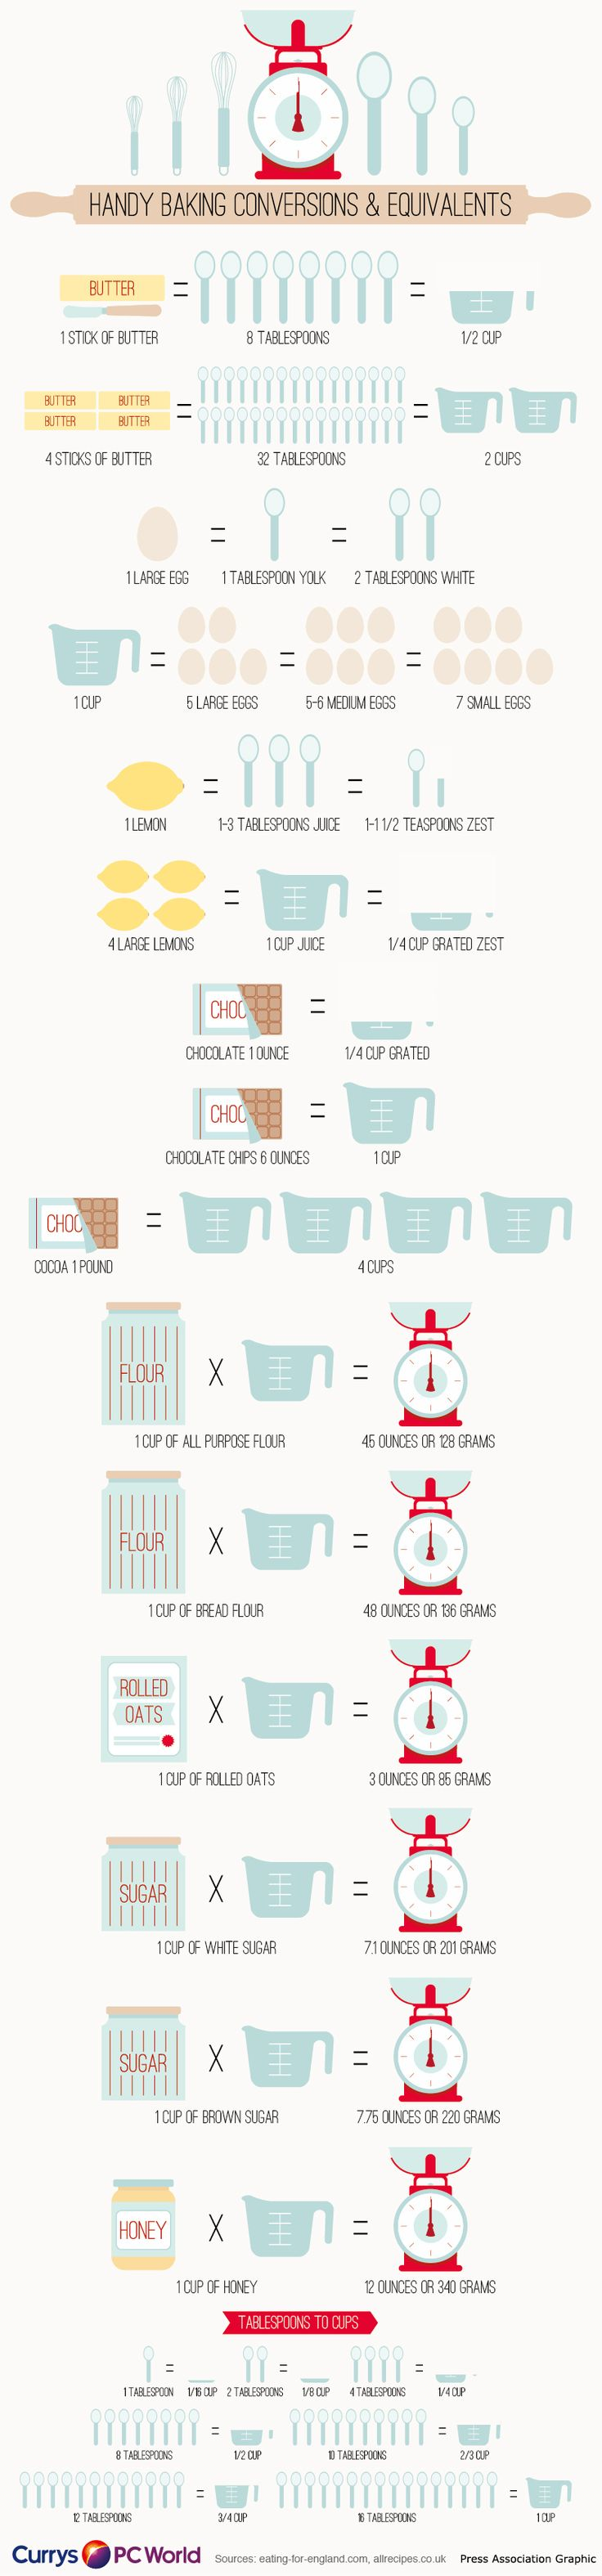 This infographic is a helpful time saver for your cooking experiments: it shows the correspondences among ingredients and containers such as tablespoons, cups and grams in a normal scale.